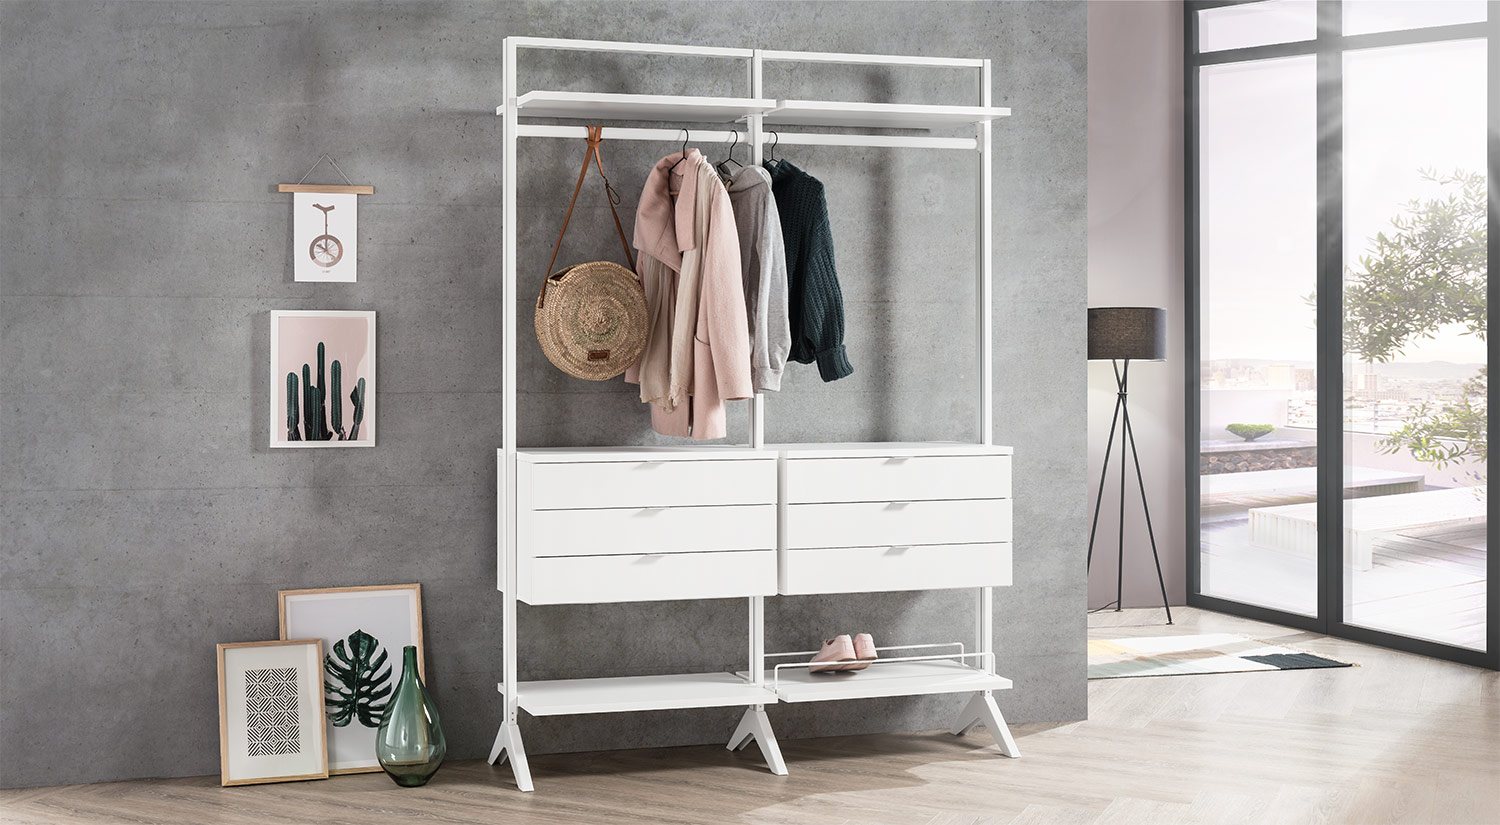 Clothes rack - CLOS-IT clothes storage white freestanding